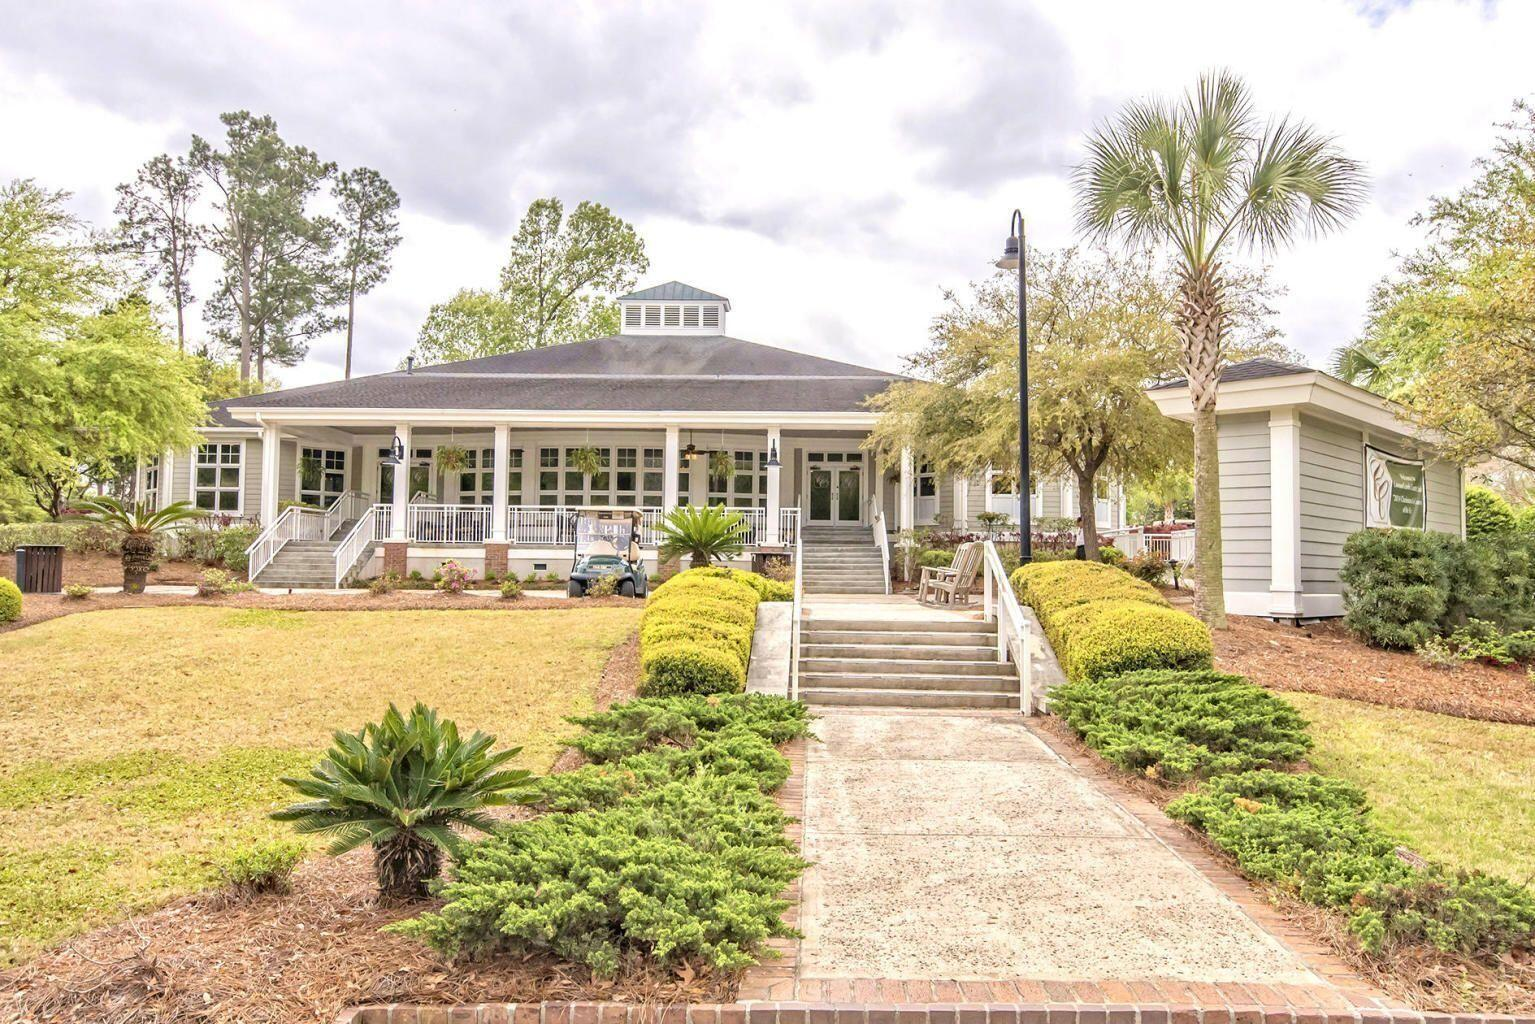 Coosaw Creek Country Club Homes For Sale - 4238 Club Course, North Charleston, SC - 55